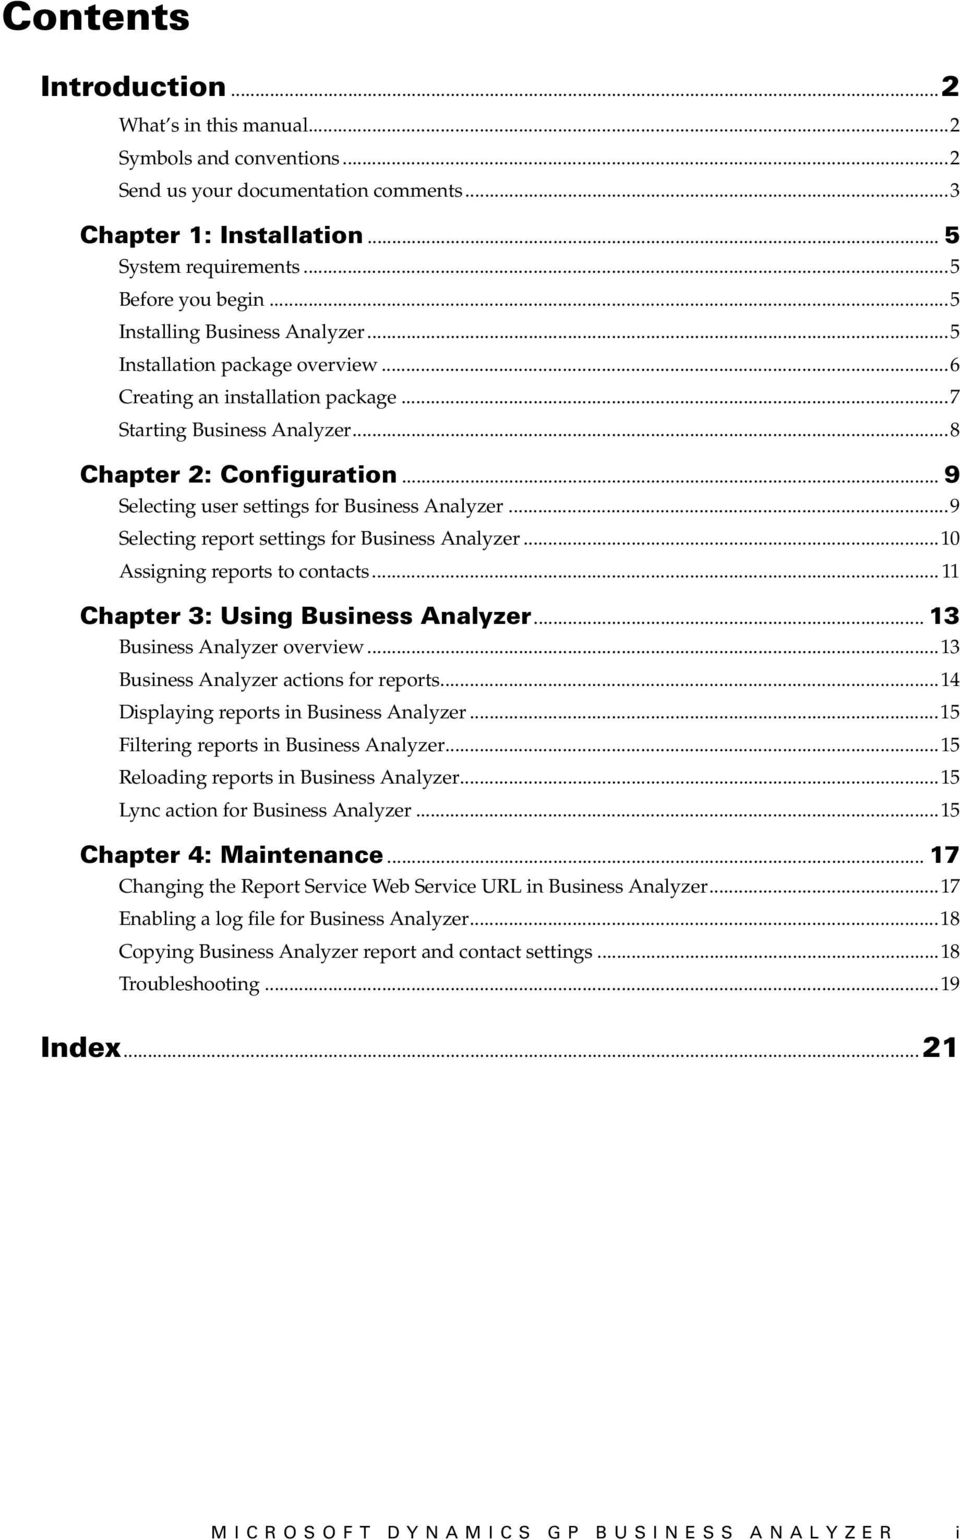 .. 9 Selecting user settings for Business Analyzer...9 Selecting report settings for Business Analyzer...10 Assigning reports to contacts... 11 Chapter 3: Using Business Analyzer.